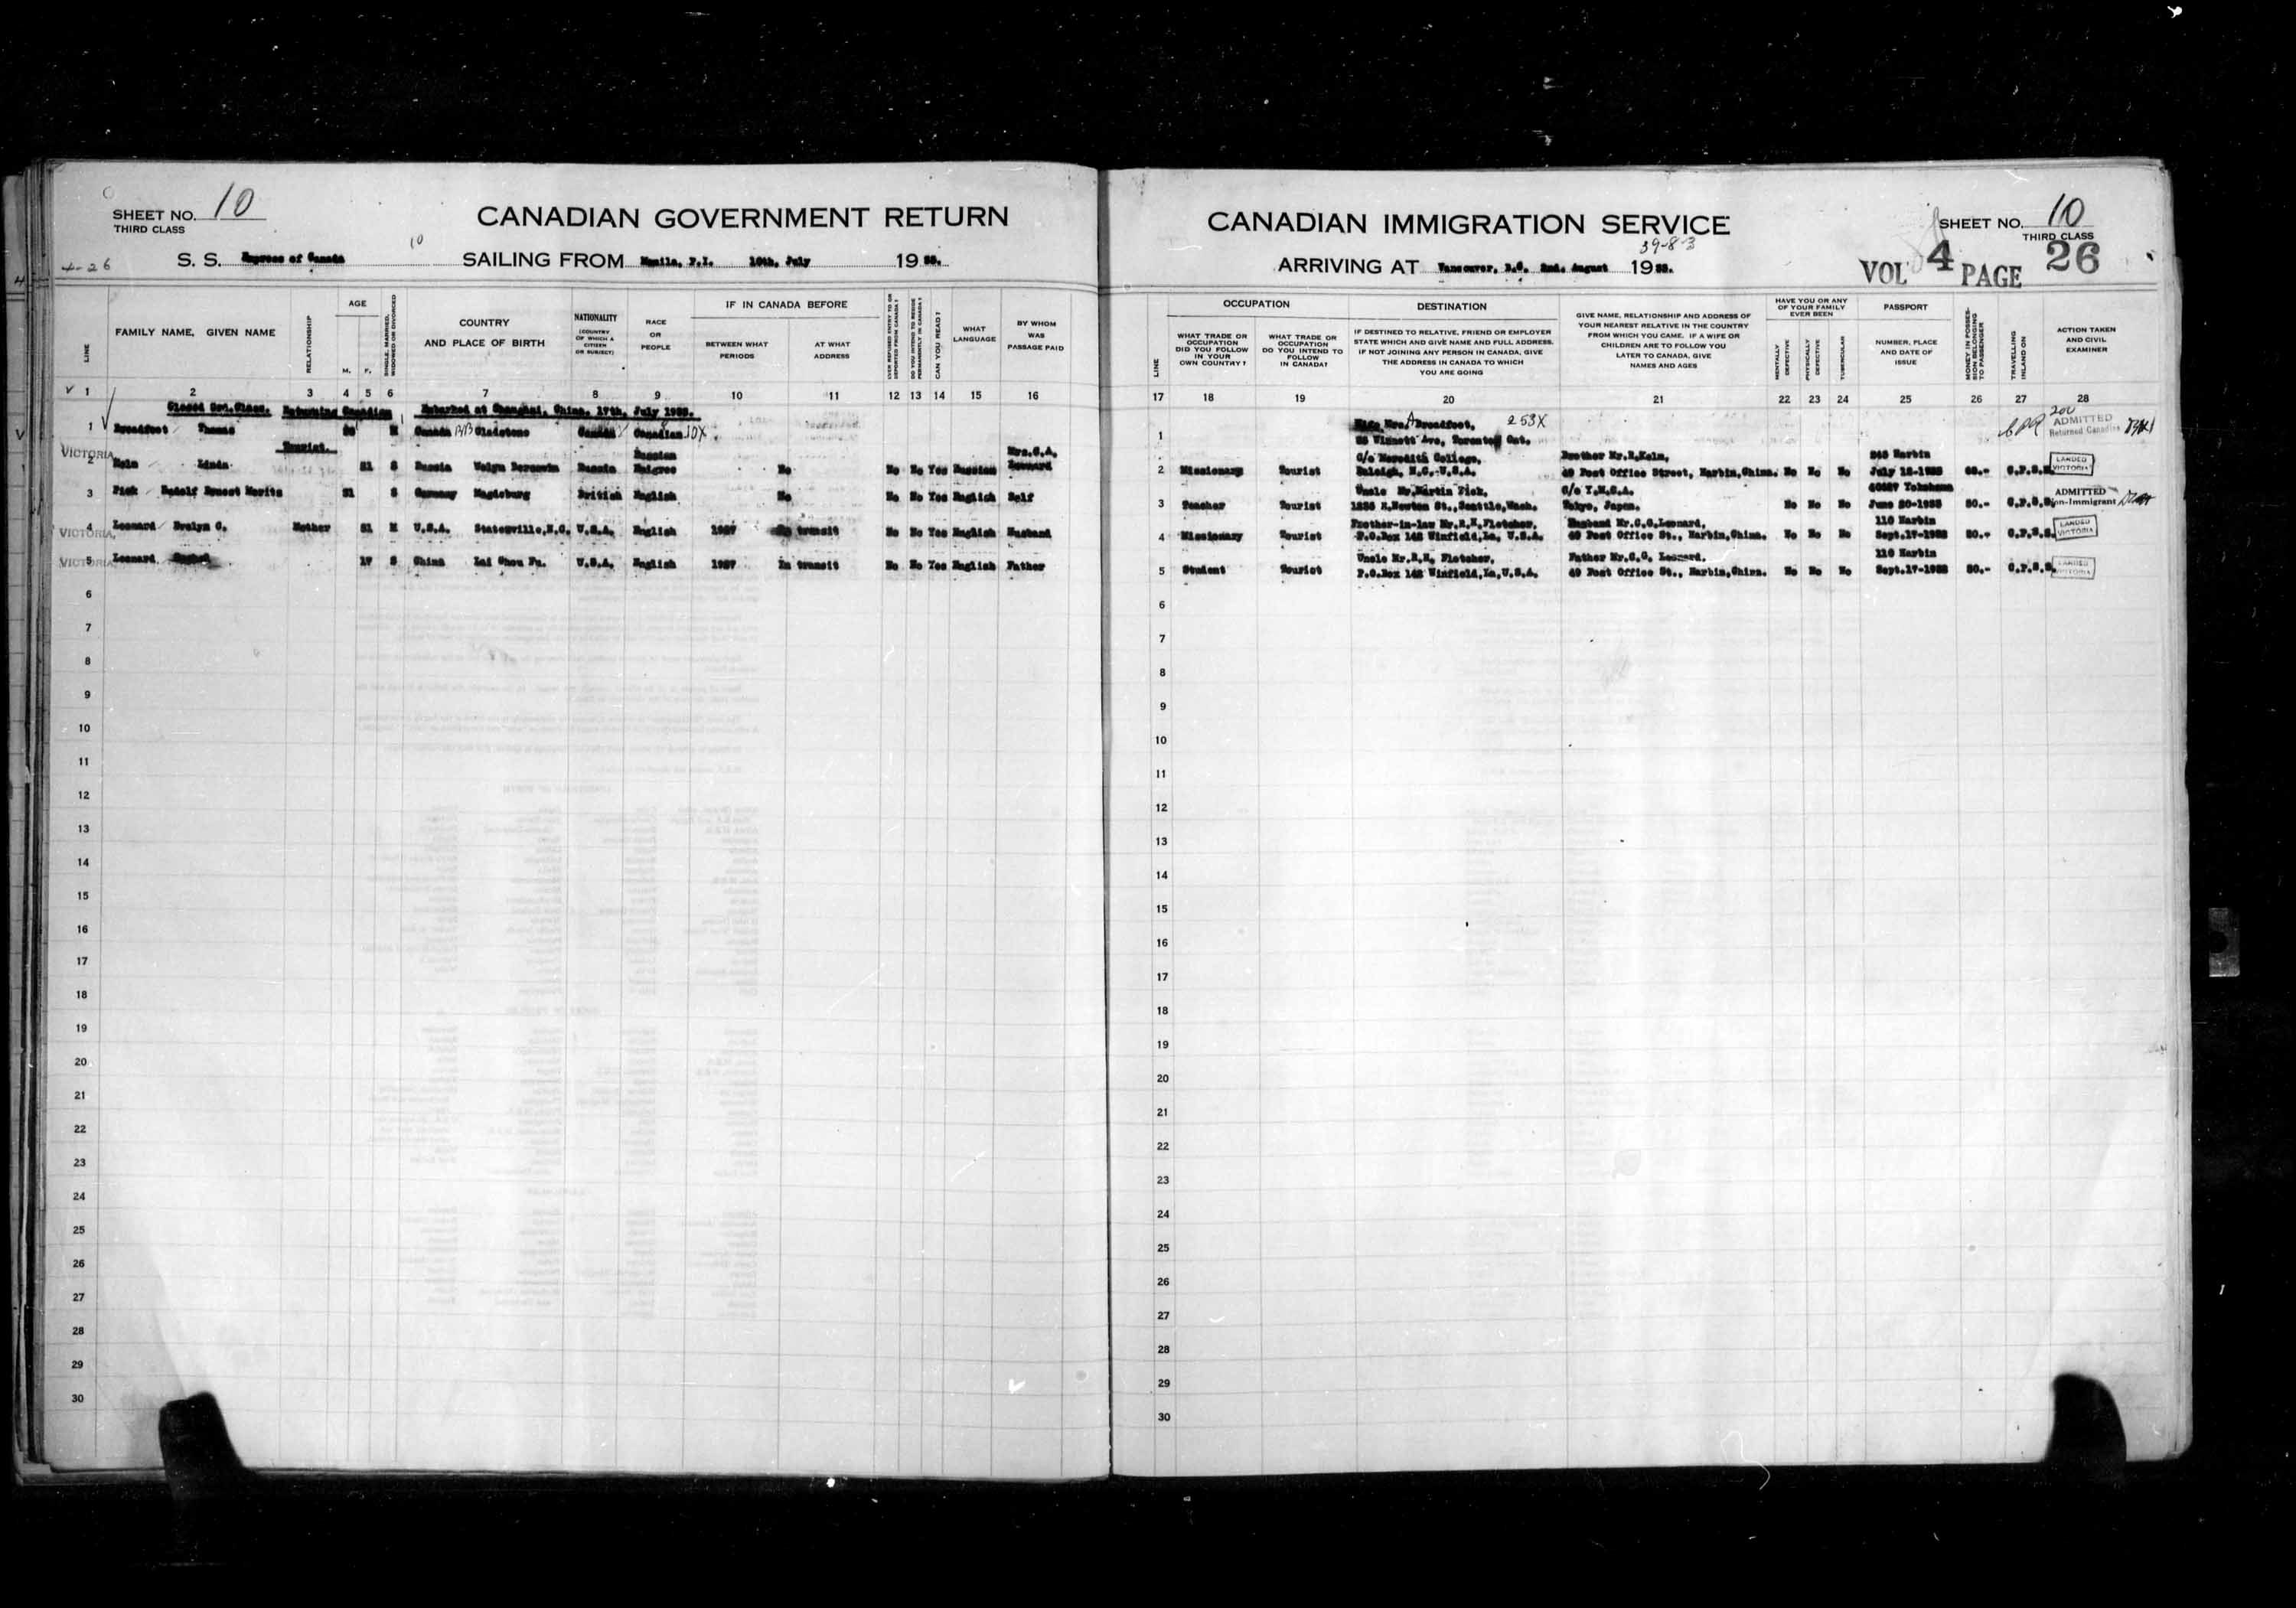 Title: Passenger Lists: Vancouver and Victoria (1925-1935) - Mikan Number: 161347 - Microform: t-14904